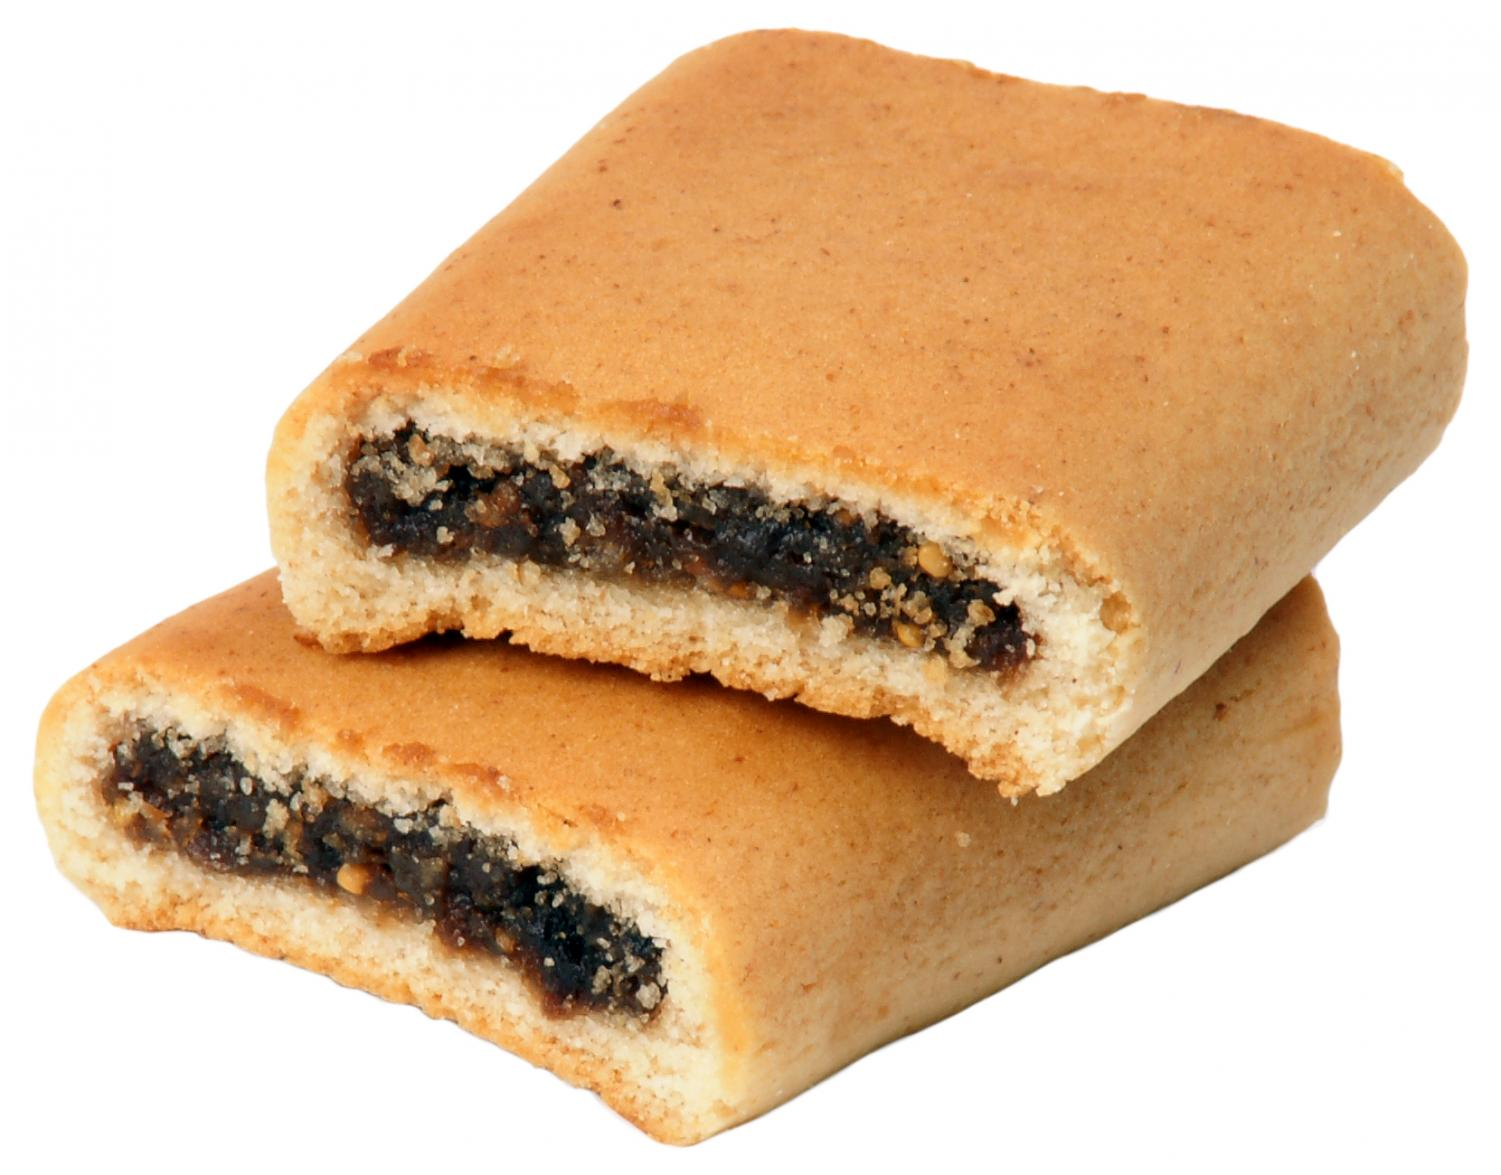 labeled for noncommercial reuse via https://commons.wikimedia.org/wiki/File:Fig-Newtons-Stacked.jpg under Creative Commons Licence